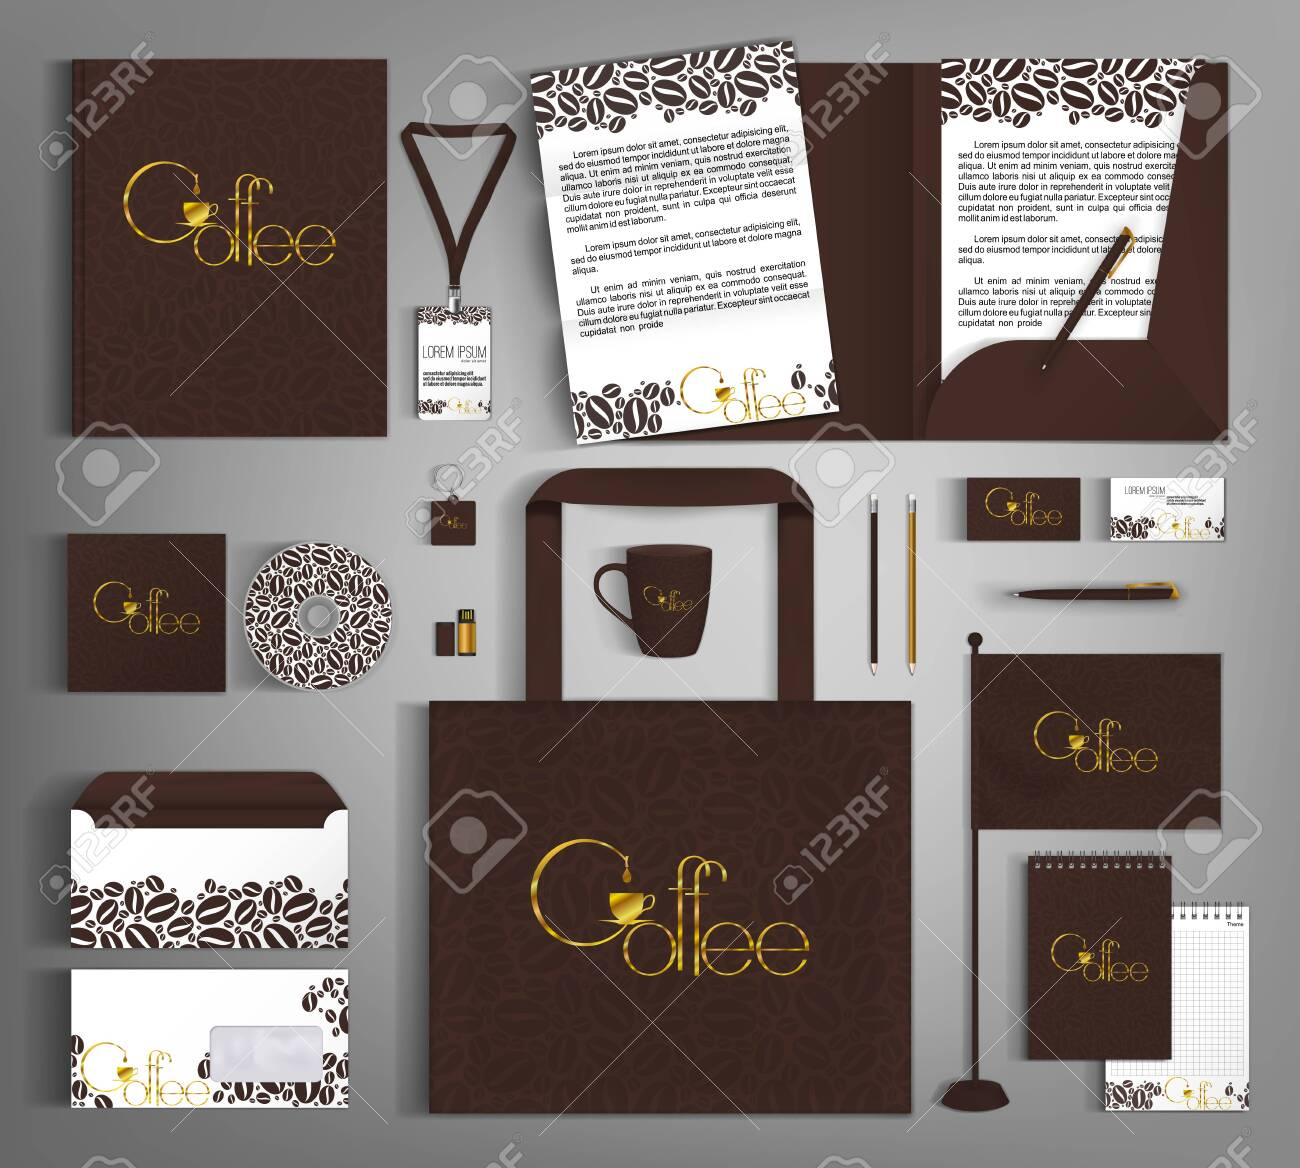 Corporate identity template with grains and golden coffee lettering - 135461662